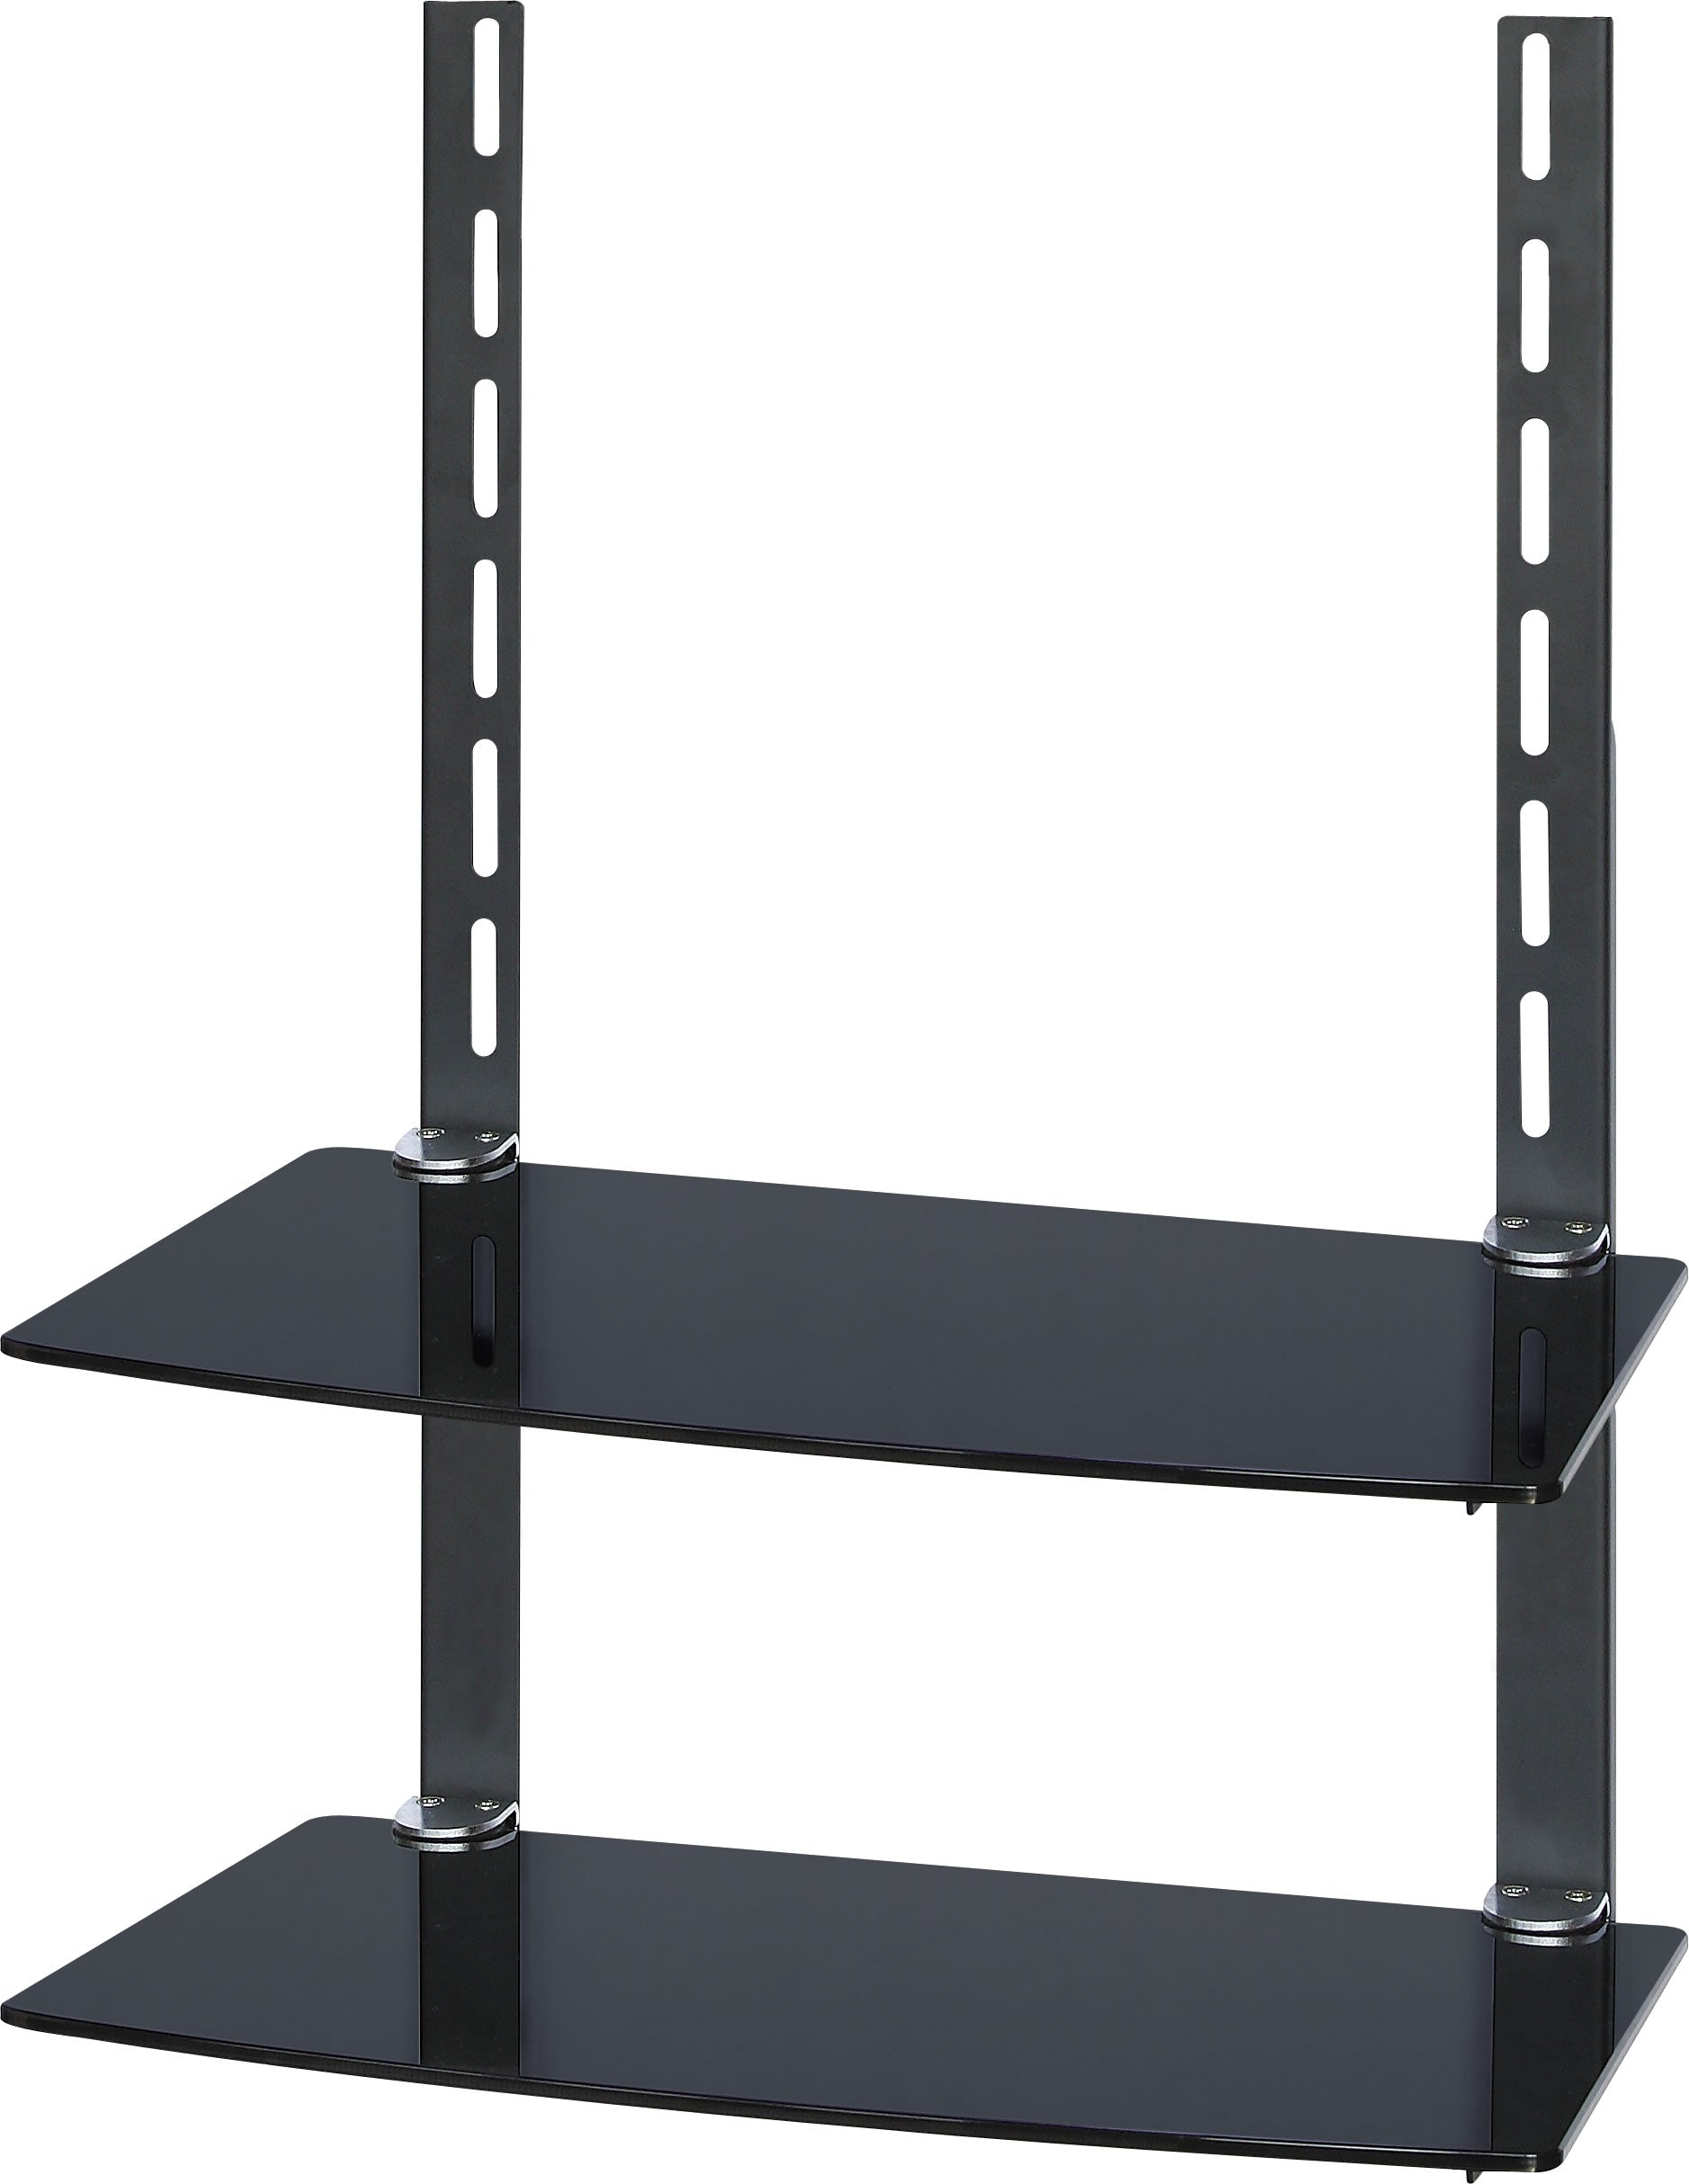 64-1202 Dual Glass Shelf Unit for Wall Mount TV Bracket